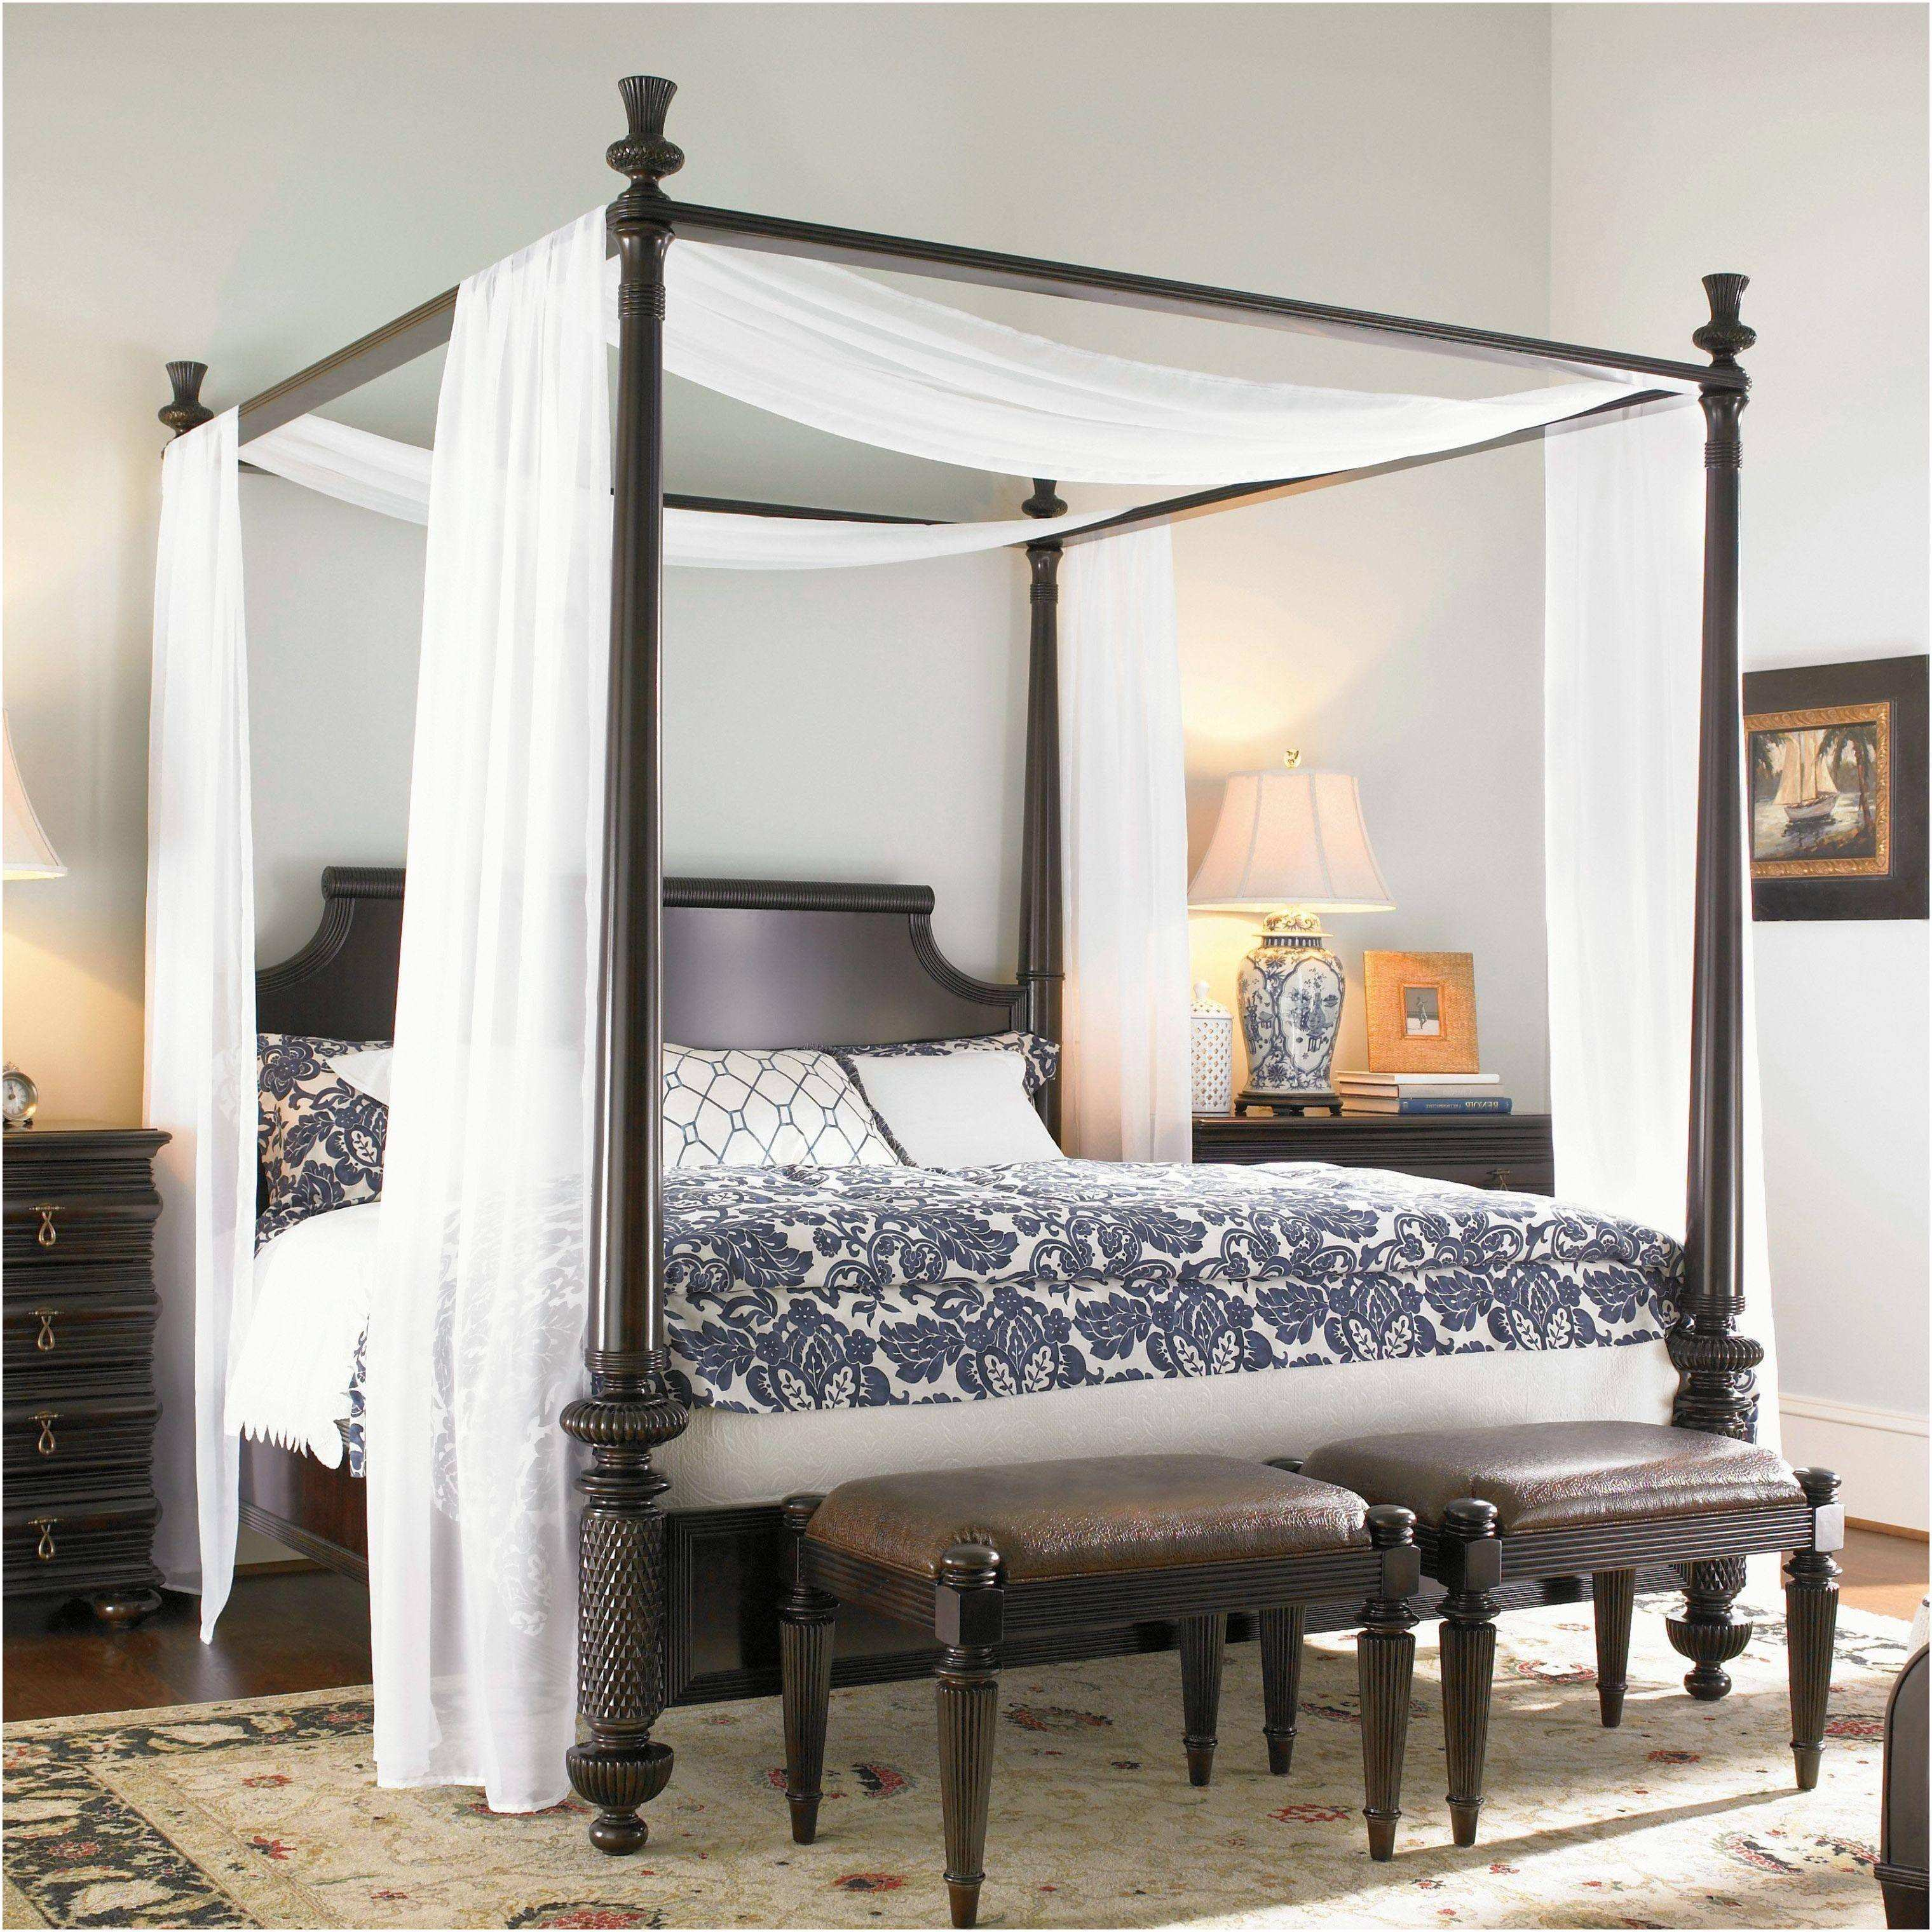 Bed and Frame Cheap Canopy Bed Frame New Bedroom Decoration Elegant